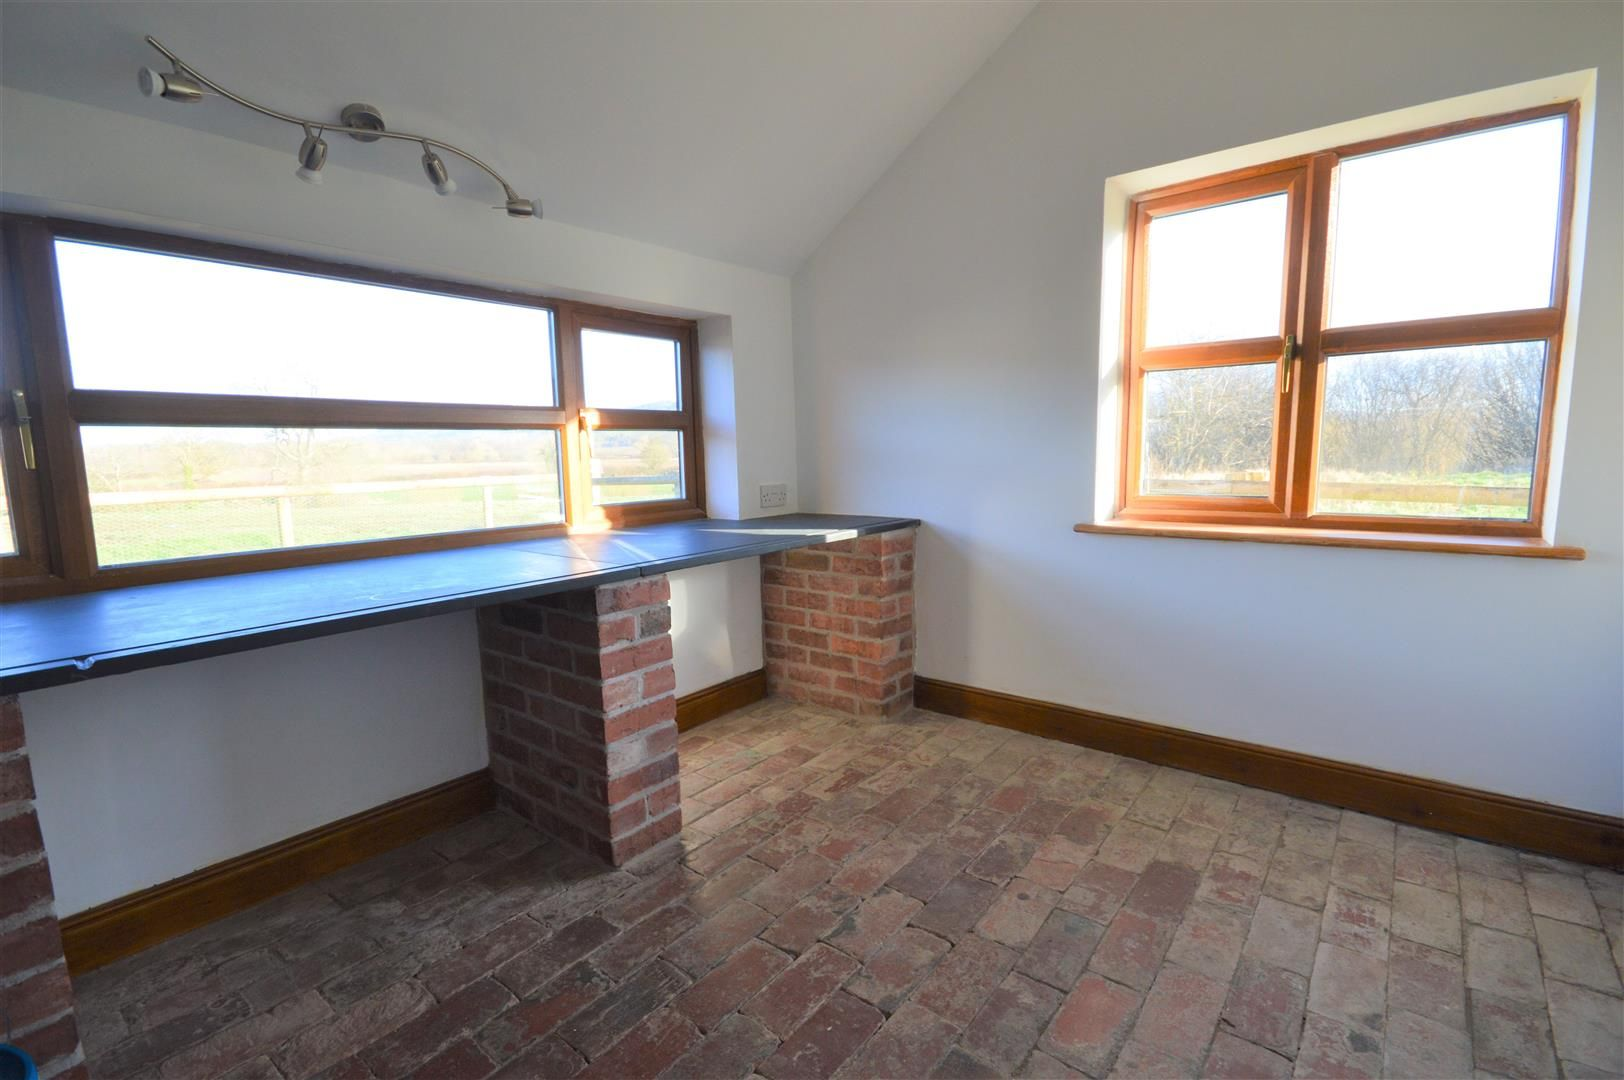 3 bed detached to rent in Preston-On-Wye  - Property Image 6